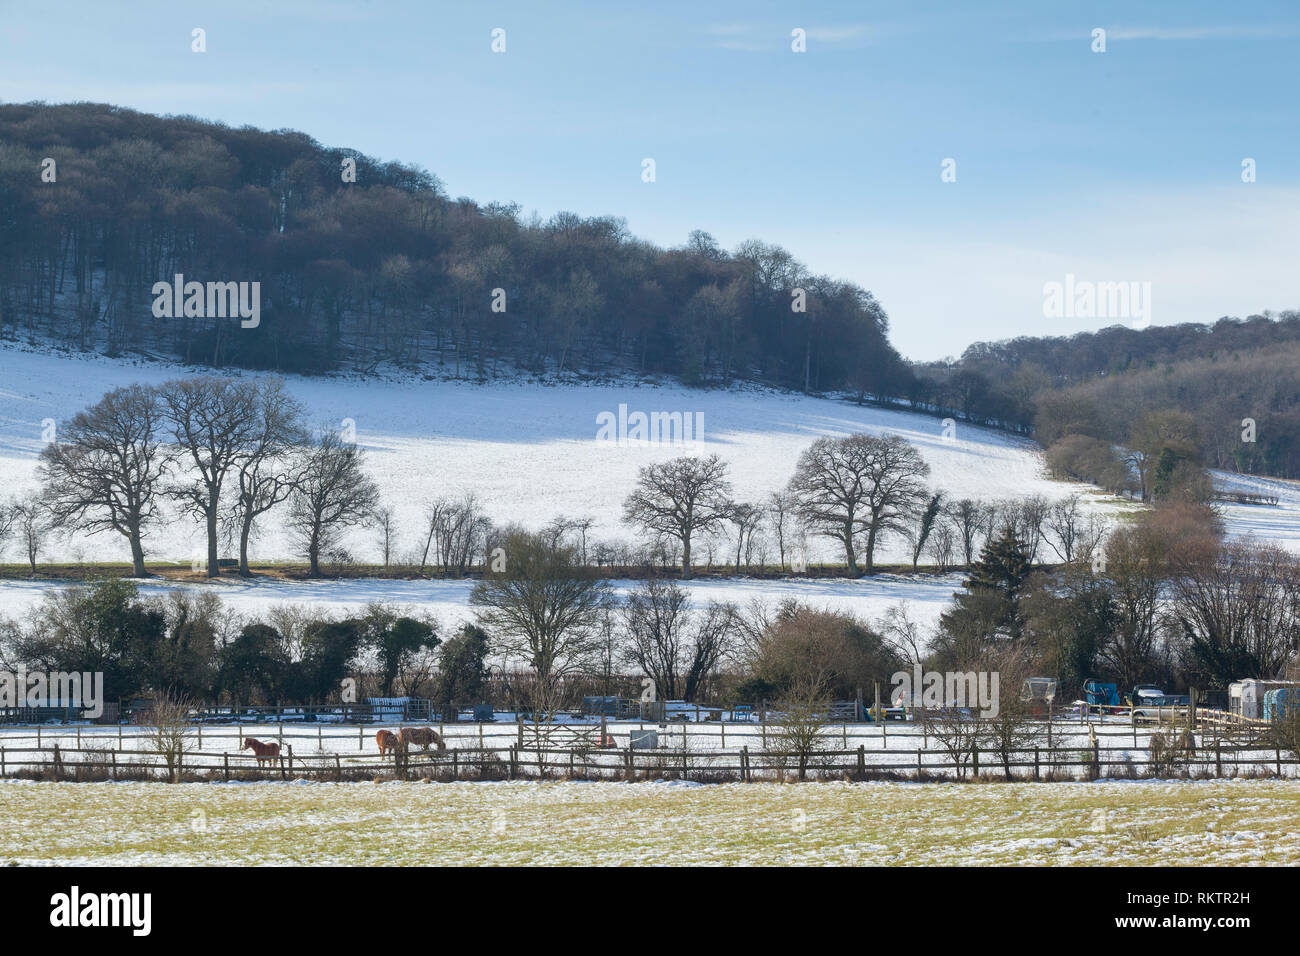 Horses graze in snow covered fields near Turville, Buckinghamshire. - Stock Image